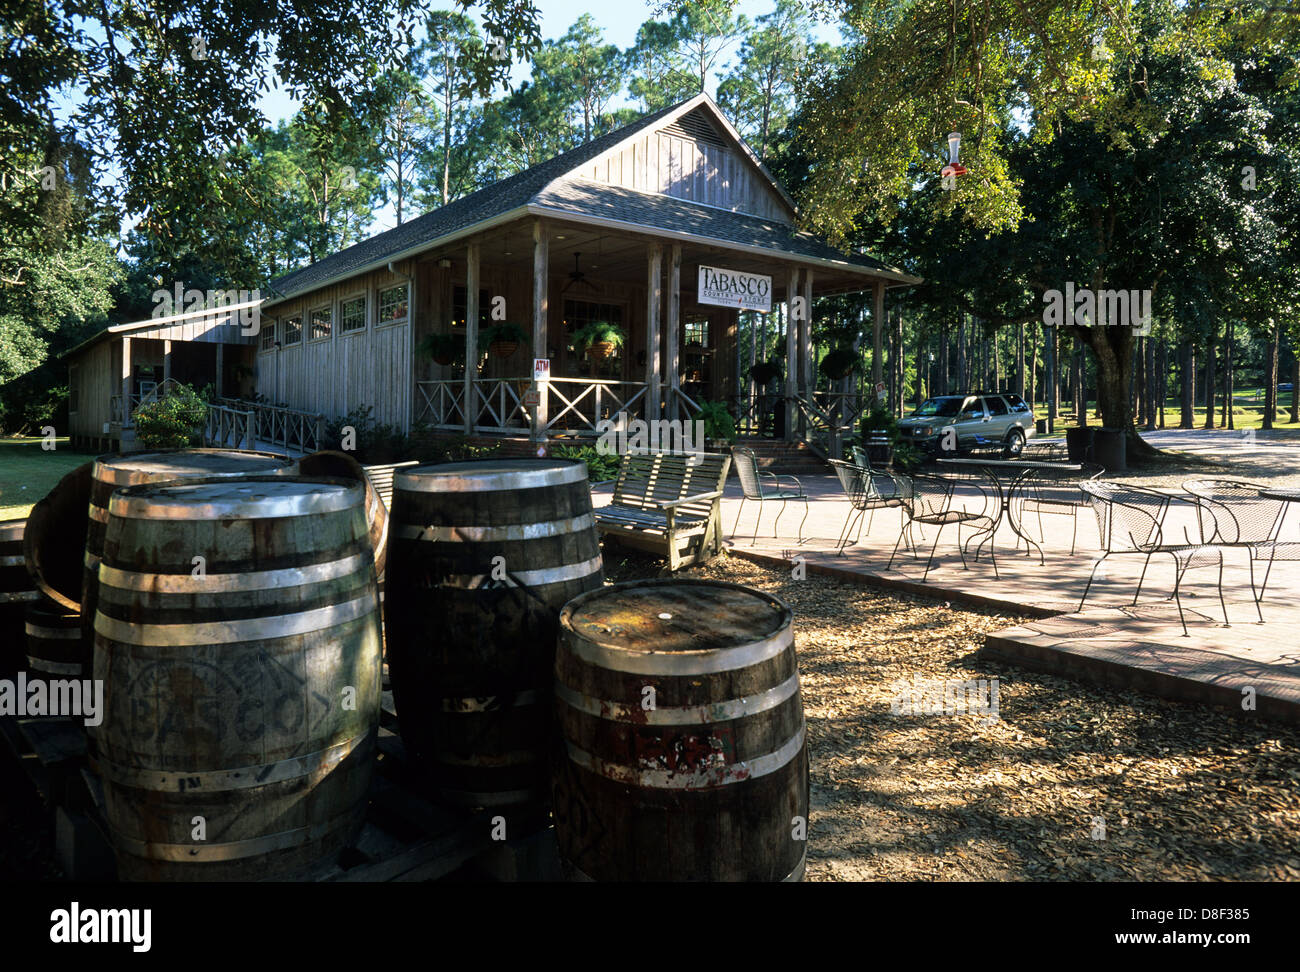 Elk283-4298 Louisiane, Avery Island, Tabasco Country Store Banque D'Images